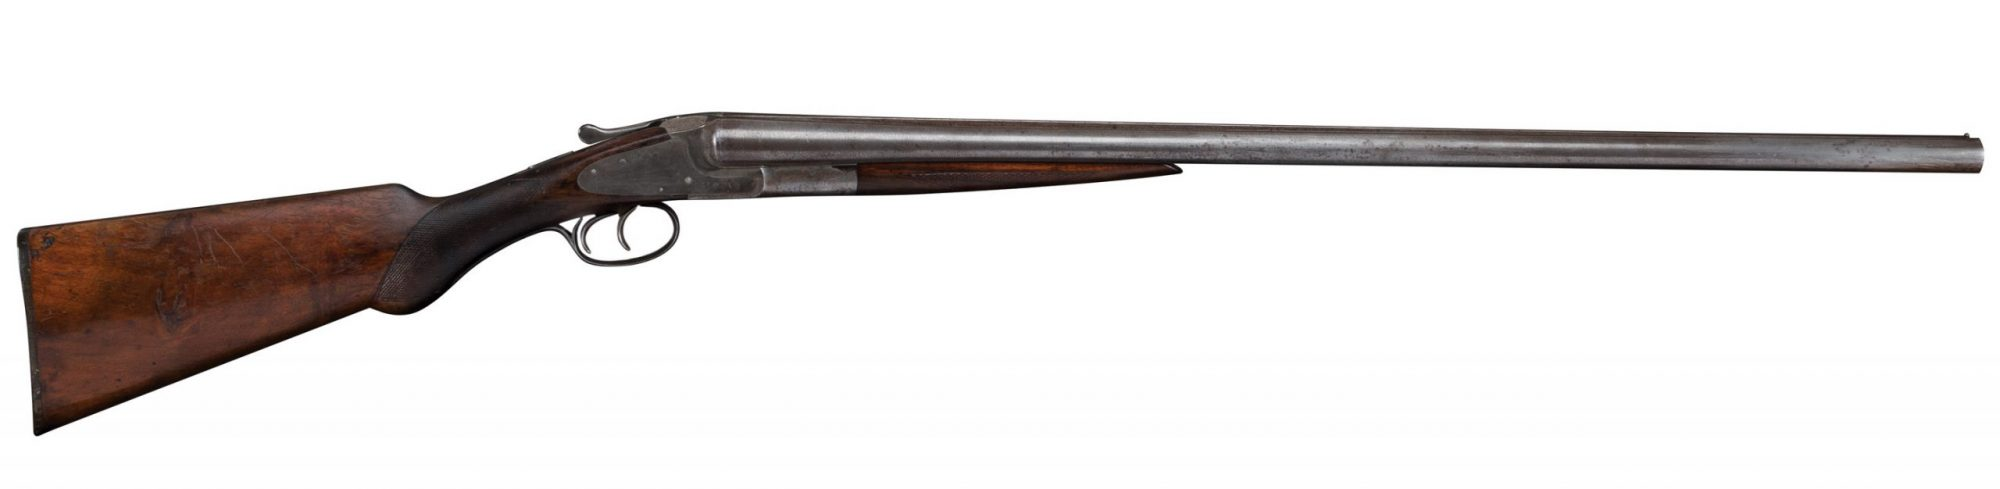 Photo of a restored L.C. Smith 12 gauge shotgun, before restoration work by Turnbull Restoration of Bloomfield NY